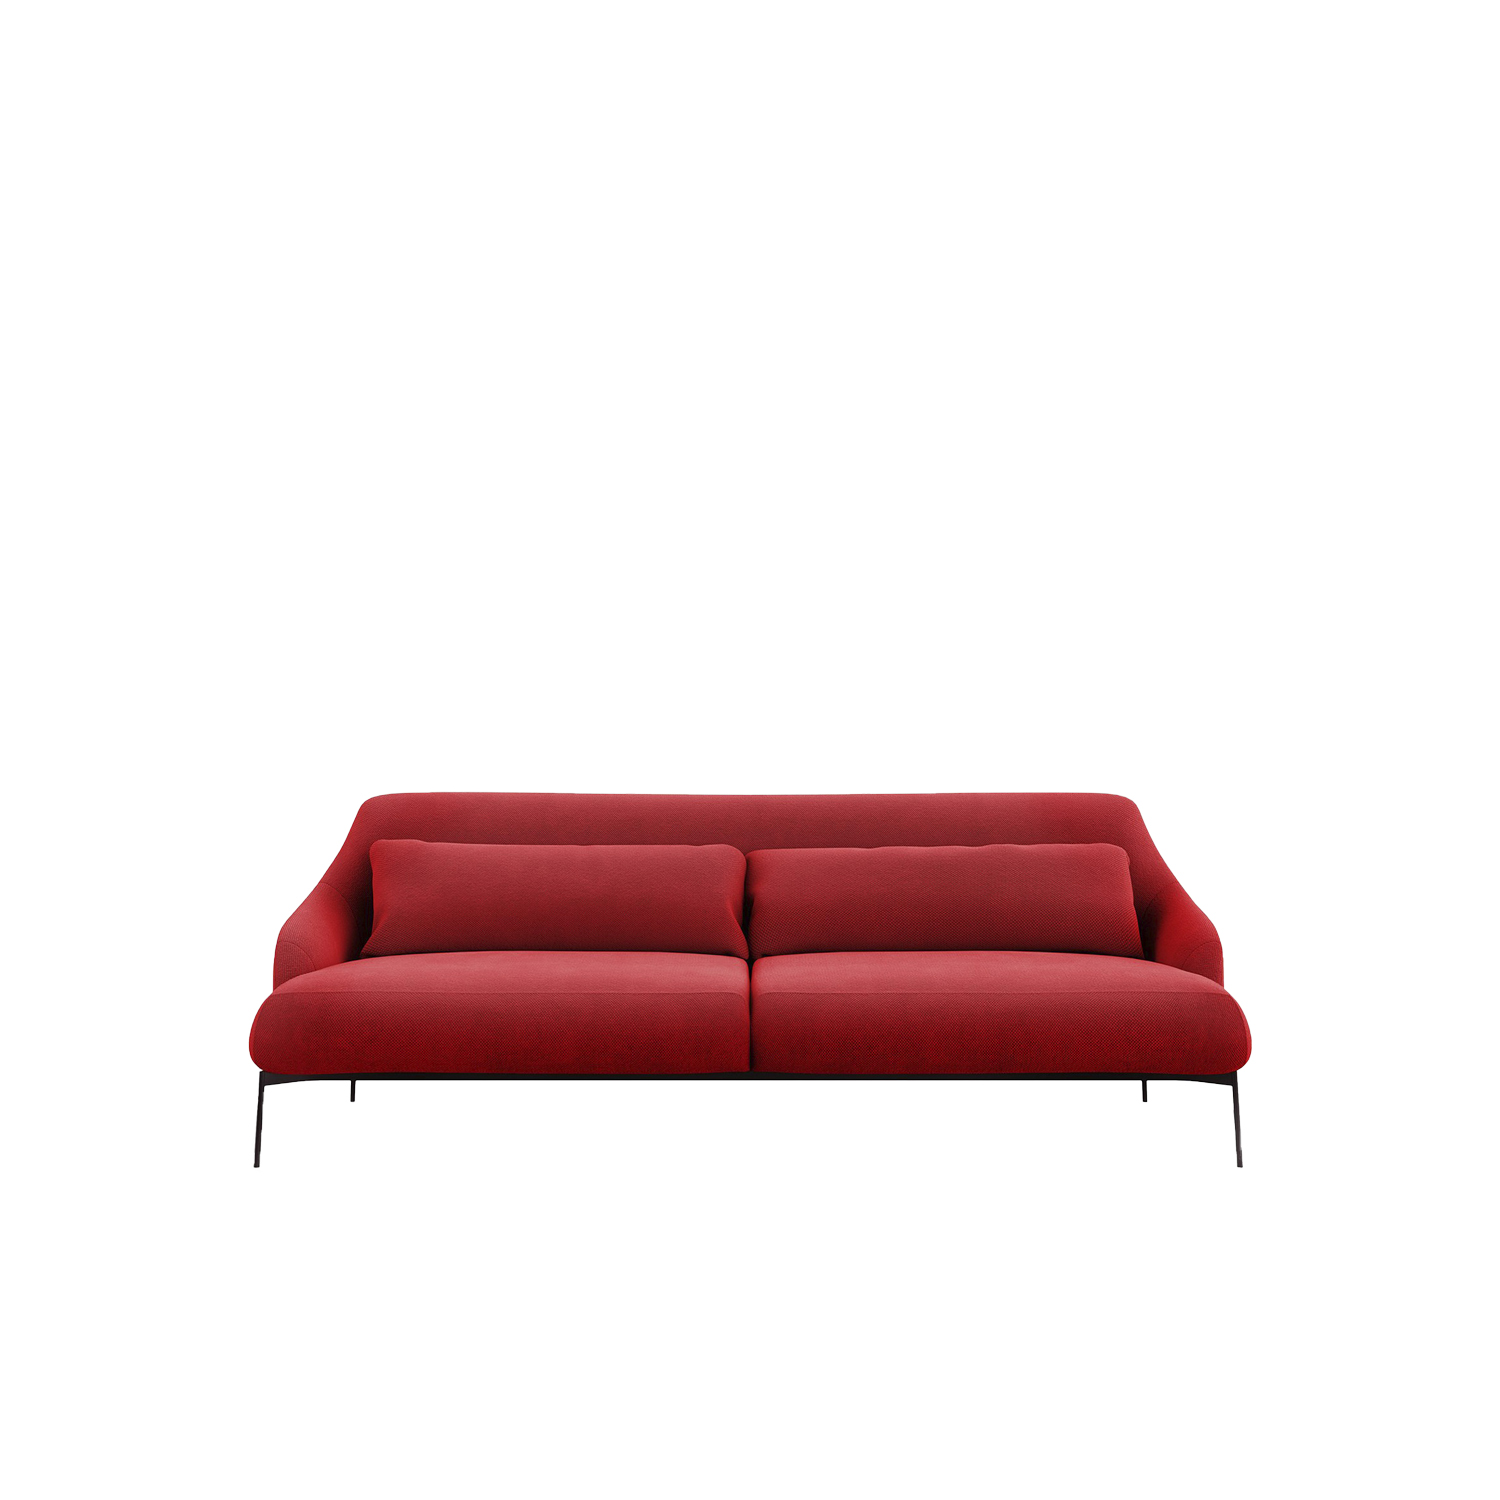 Lima Sofa - A system consisting of sofas and armchairs in different sizes, with a markedly sleek shape to receive the body nicely.‎ Extra comfort is given by the large lumbar supporting cushion on the ample seat.‎ Elegantly thin are the feet at the base of the frame, adding a touch of dynamism to the cosiness.‎